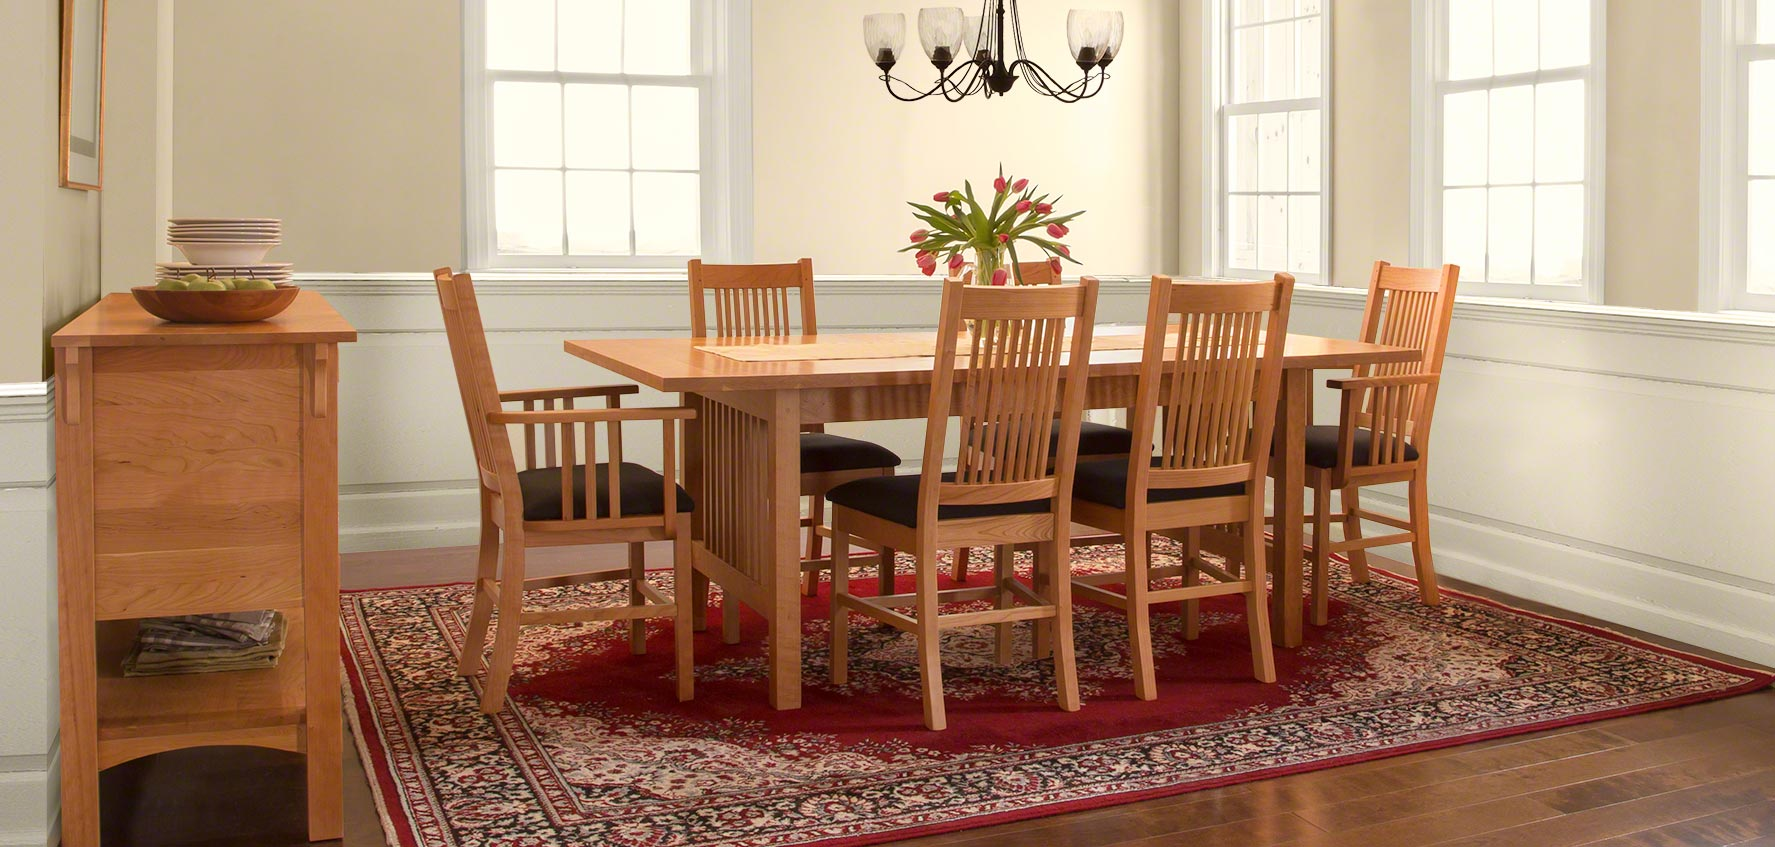 Wood Dining Tables Clearance Sale Vermont Woods Studios - Dining chairs and table clearance sale